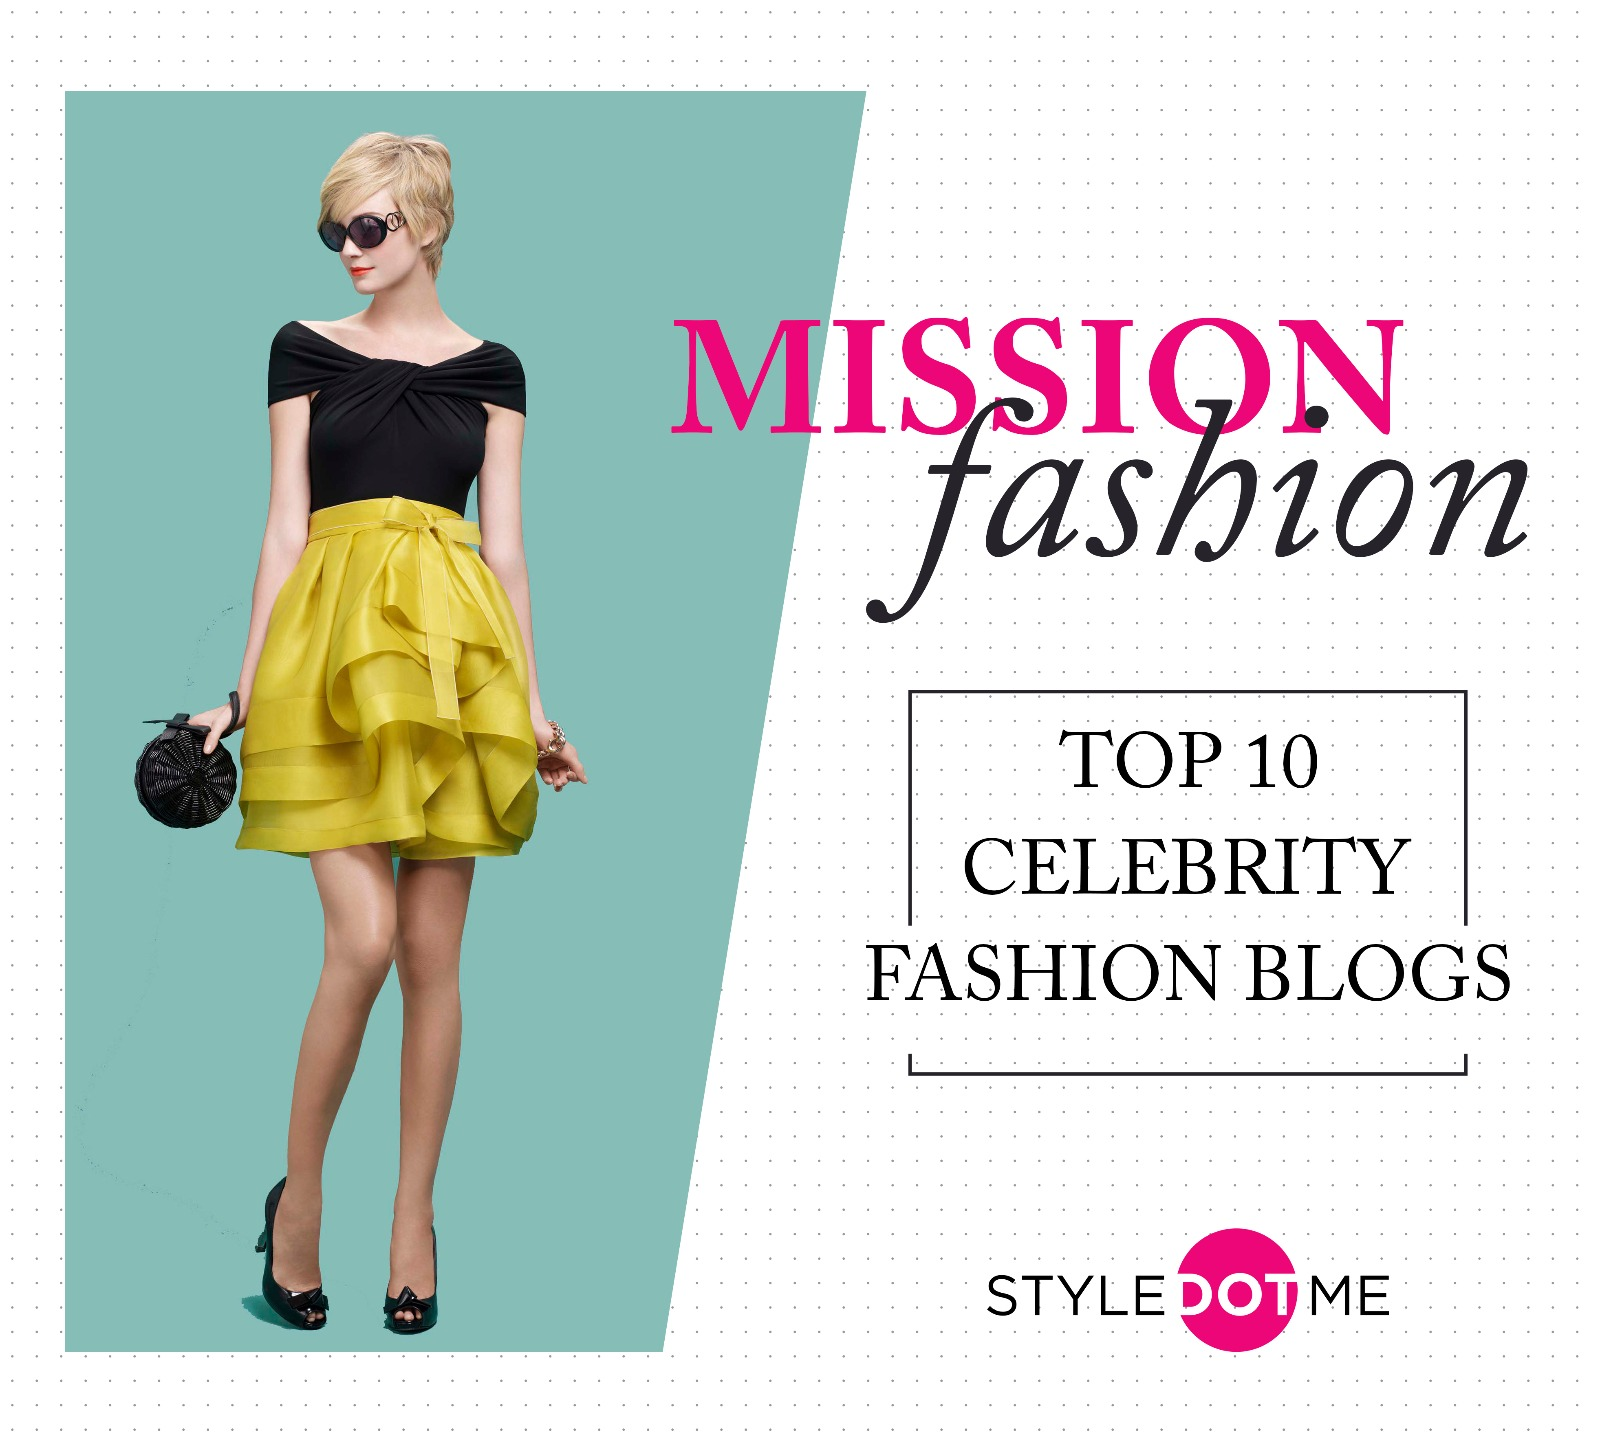 Mission fashion top 10 celebrity fashion blogs Celebrity fashion style blog